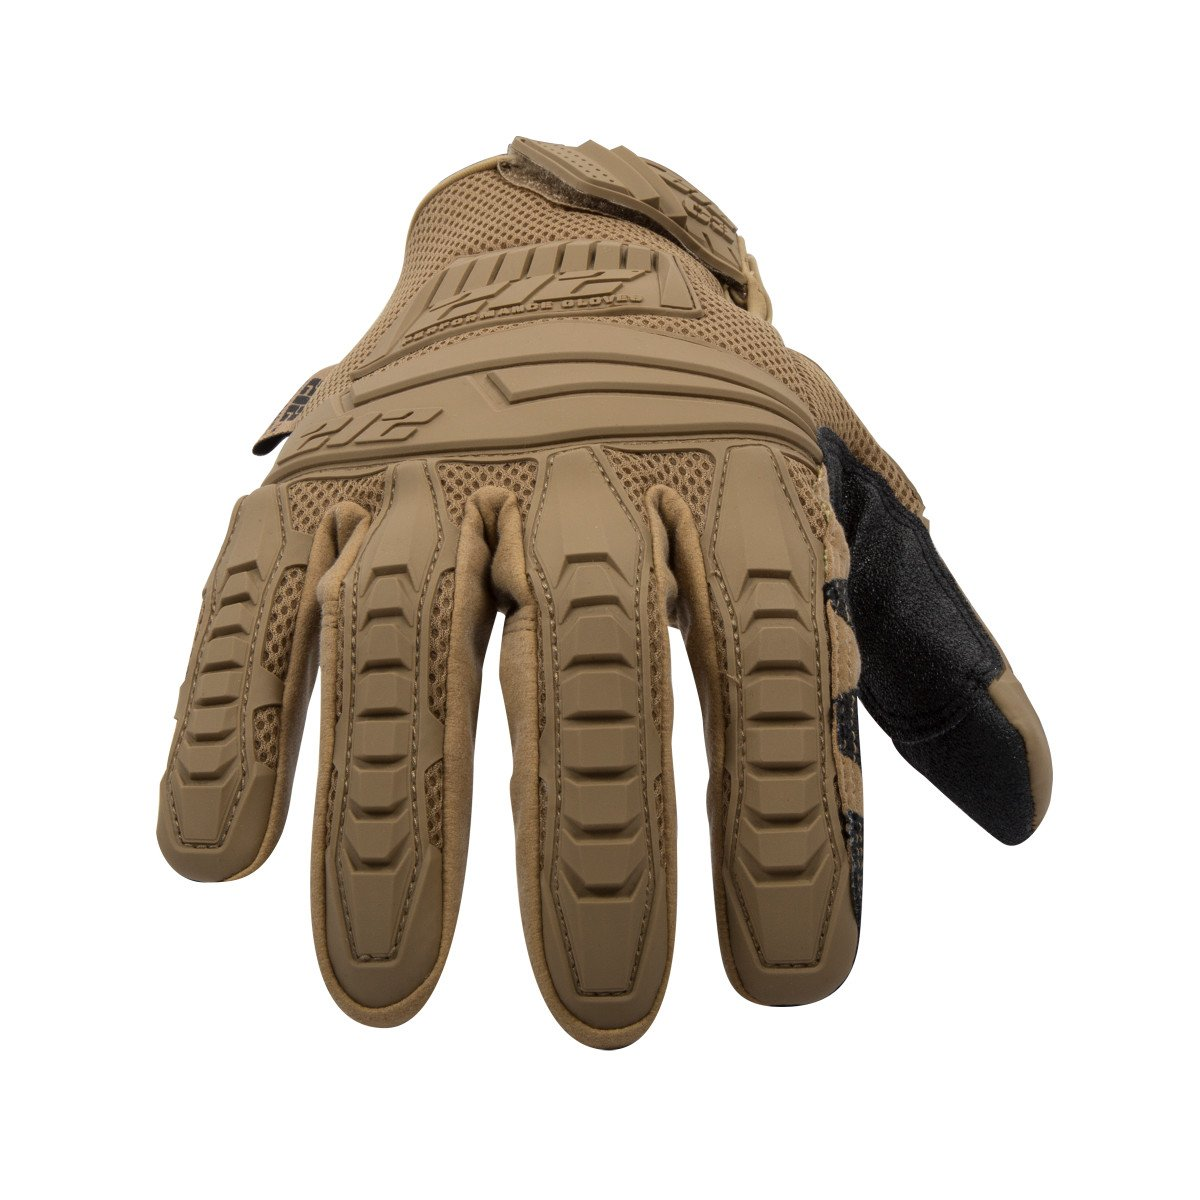 212 Performance Gloves IMPC3AM-70-010 Cut Resistant Impact Air Mesh Gloves (EN Level 3), Large by 212 Performance Gloves (Image #2)